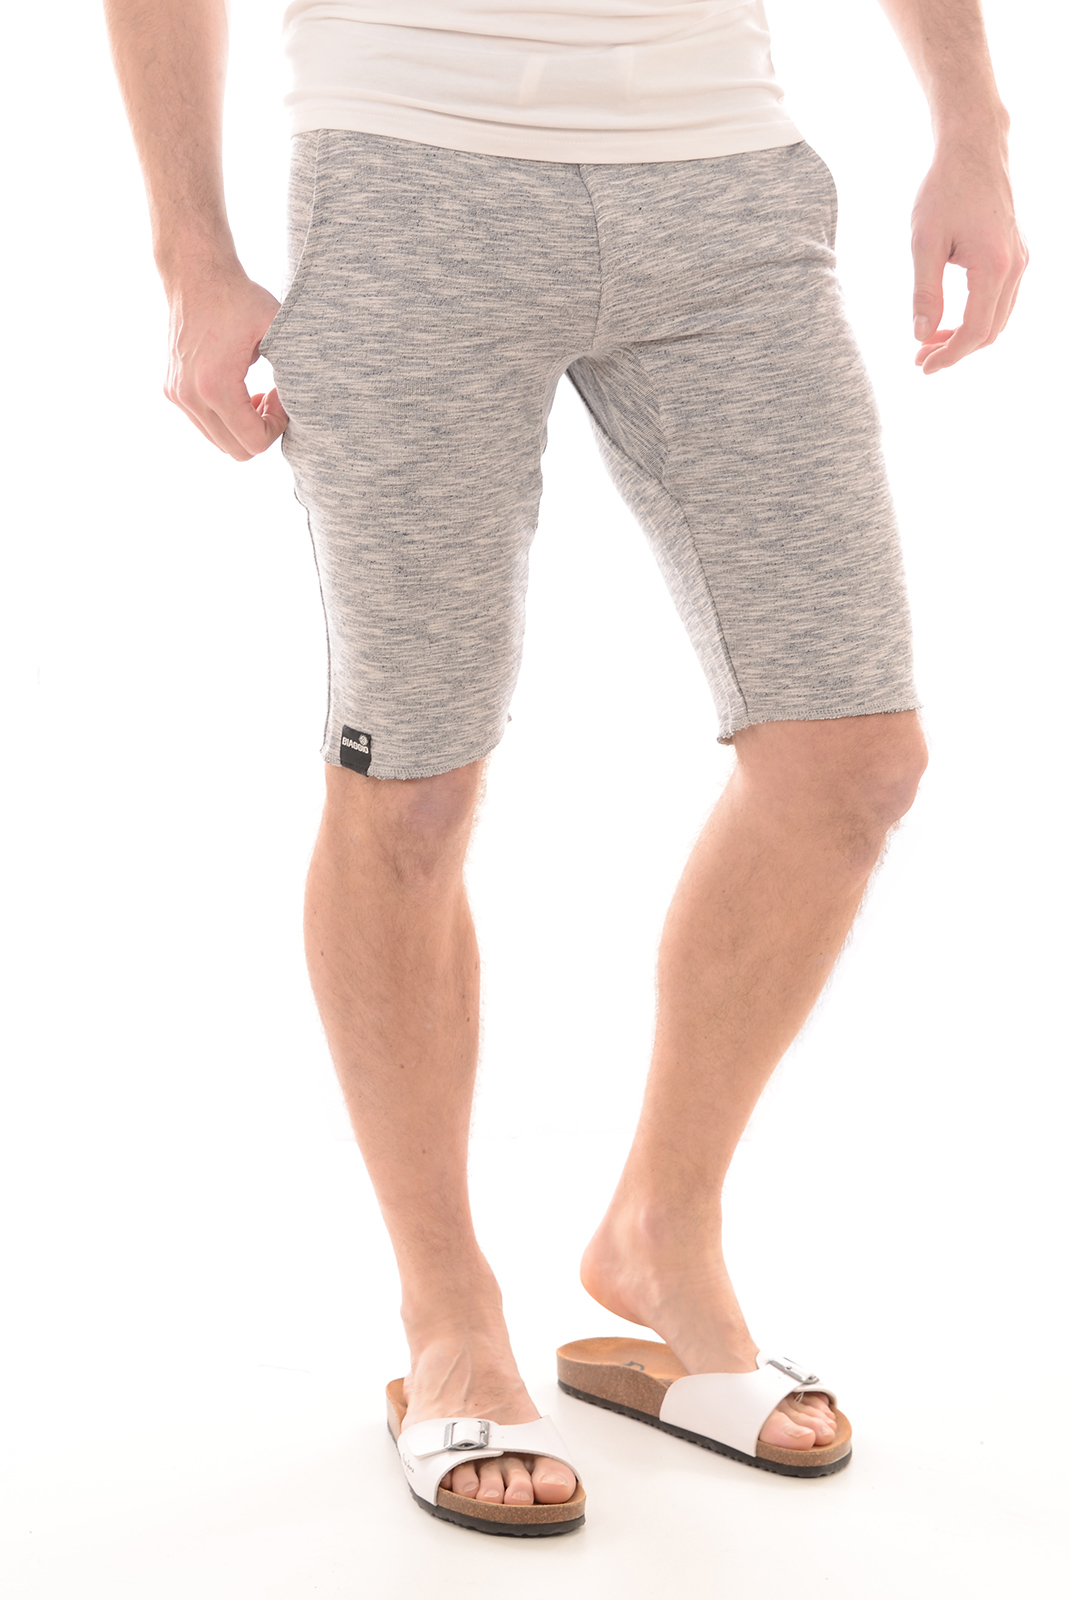 HOMME  Biaggio jeans FLORAS LT GREY